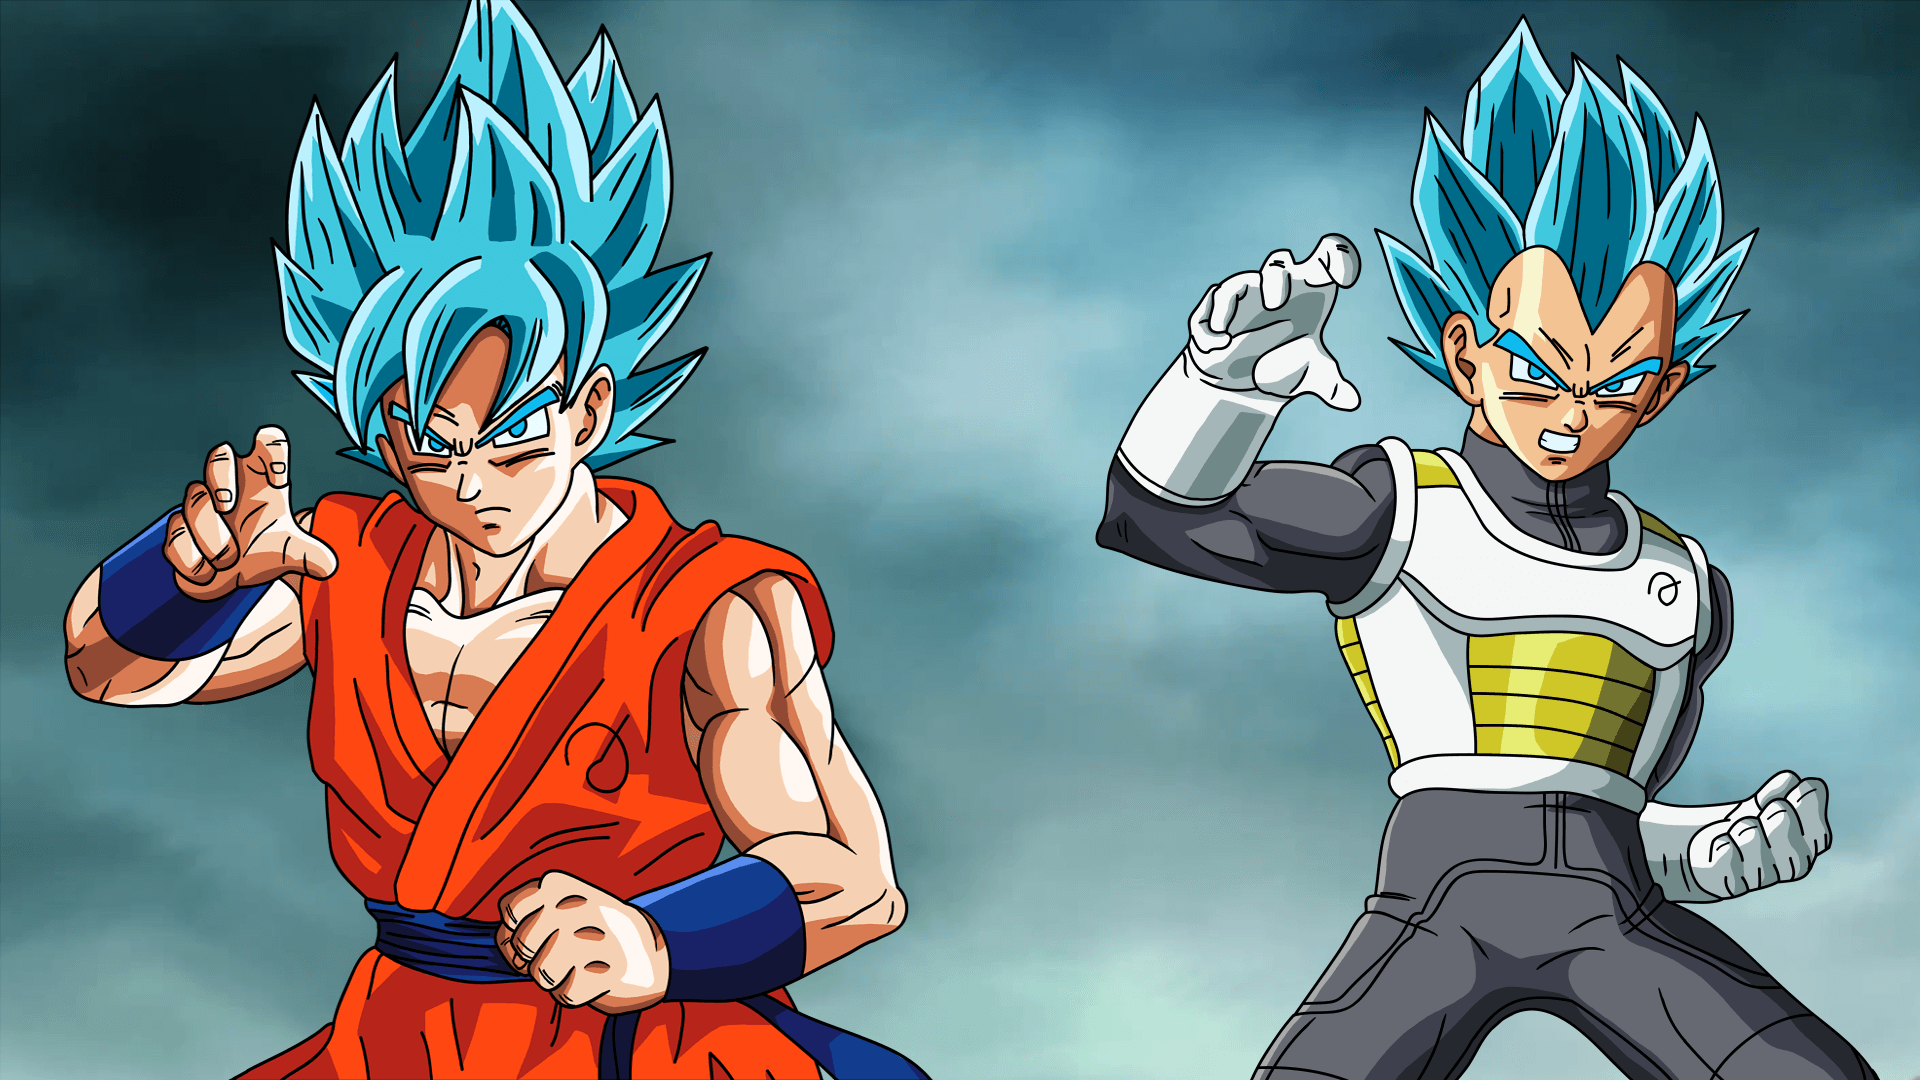 Goku Super Saiyan 4 Wallpapers Wallpaper Cave